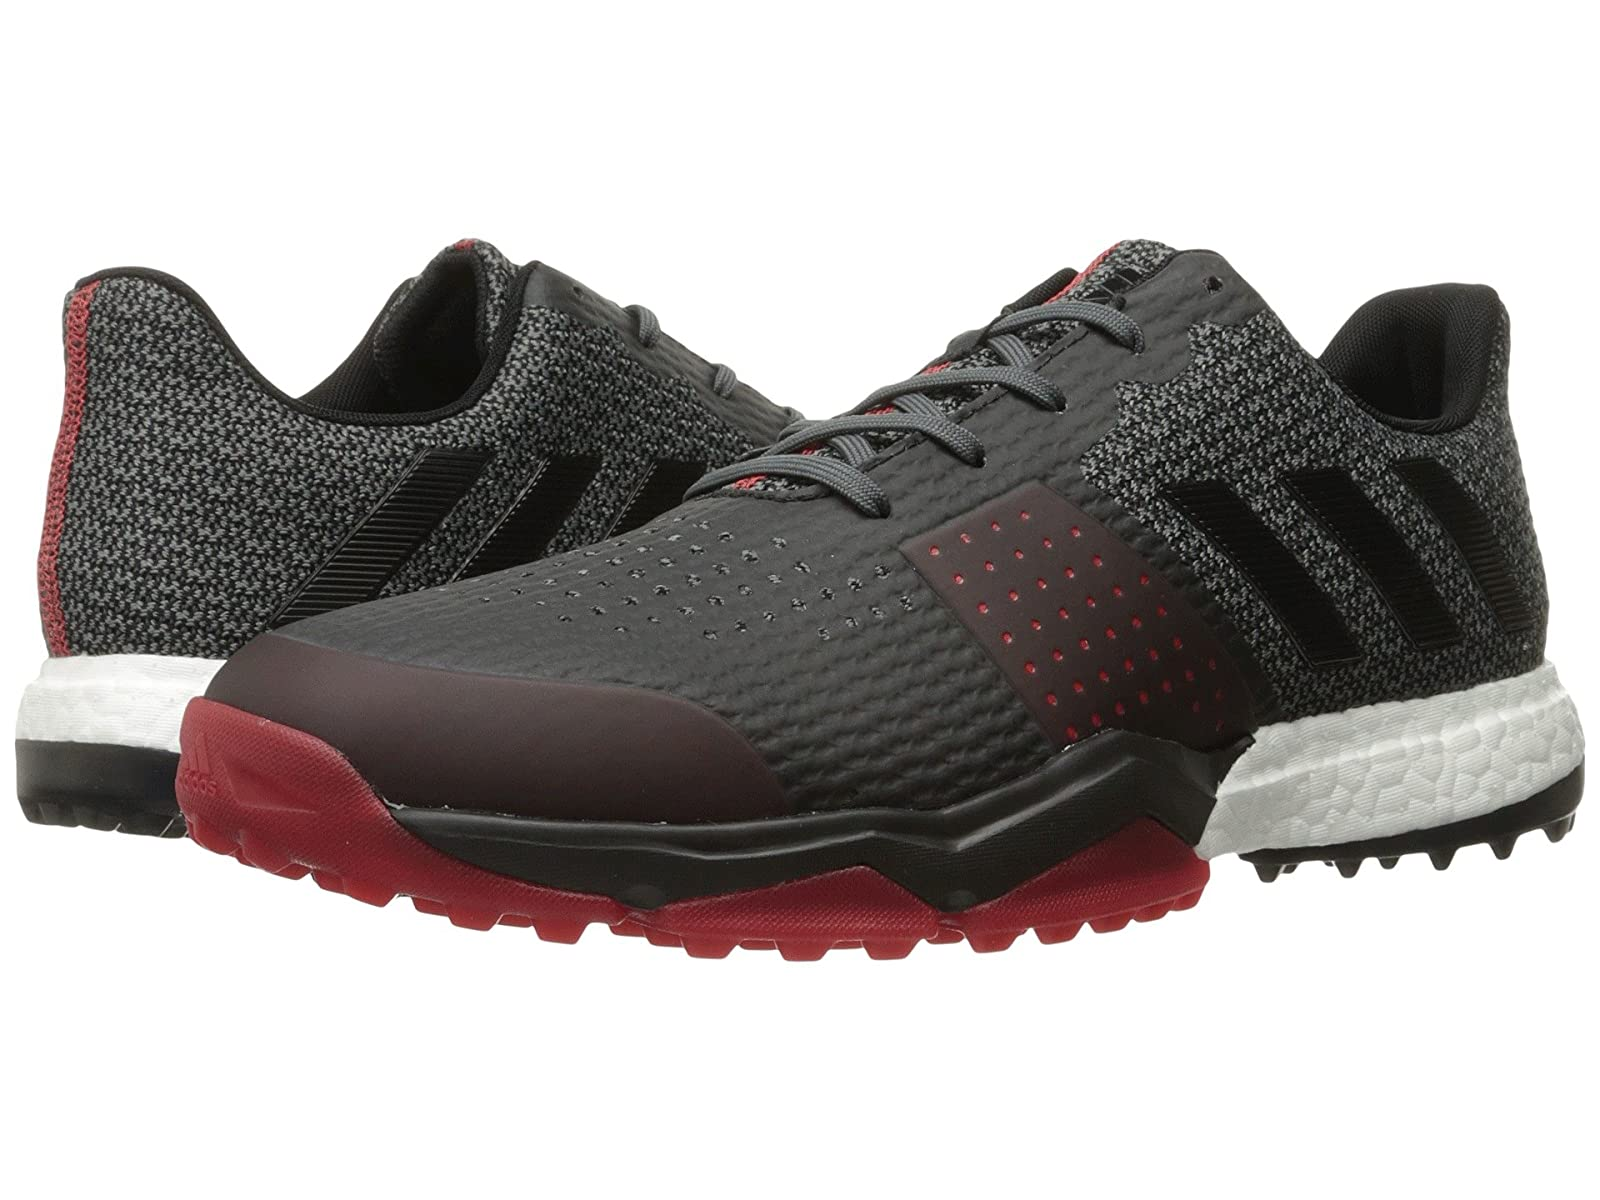 adidas Golf Adipower S Boost 3Atmospheric grades have affordable shoes